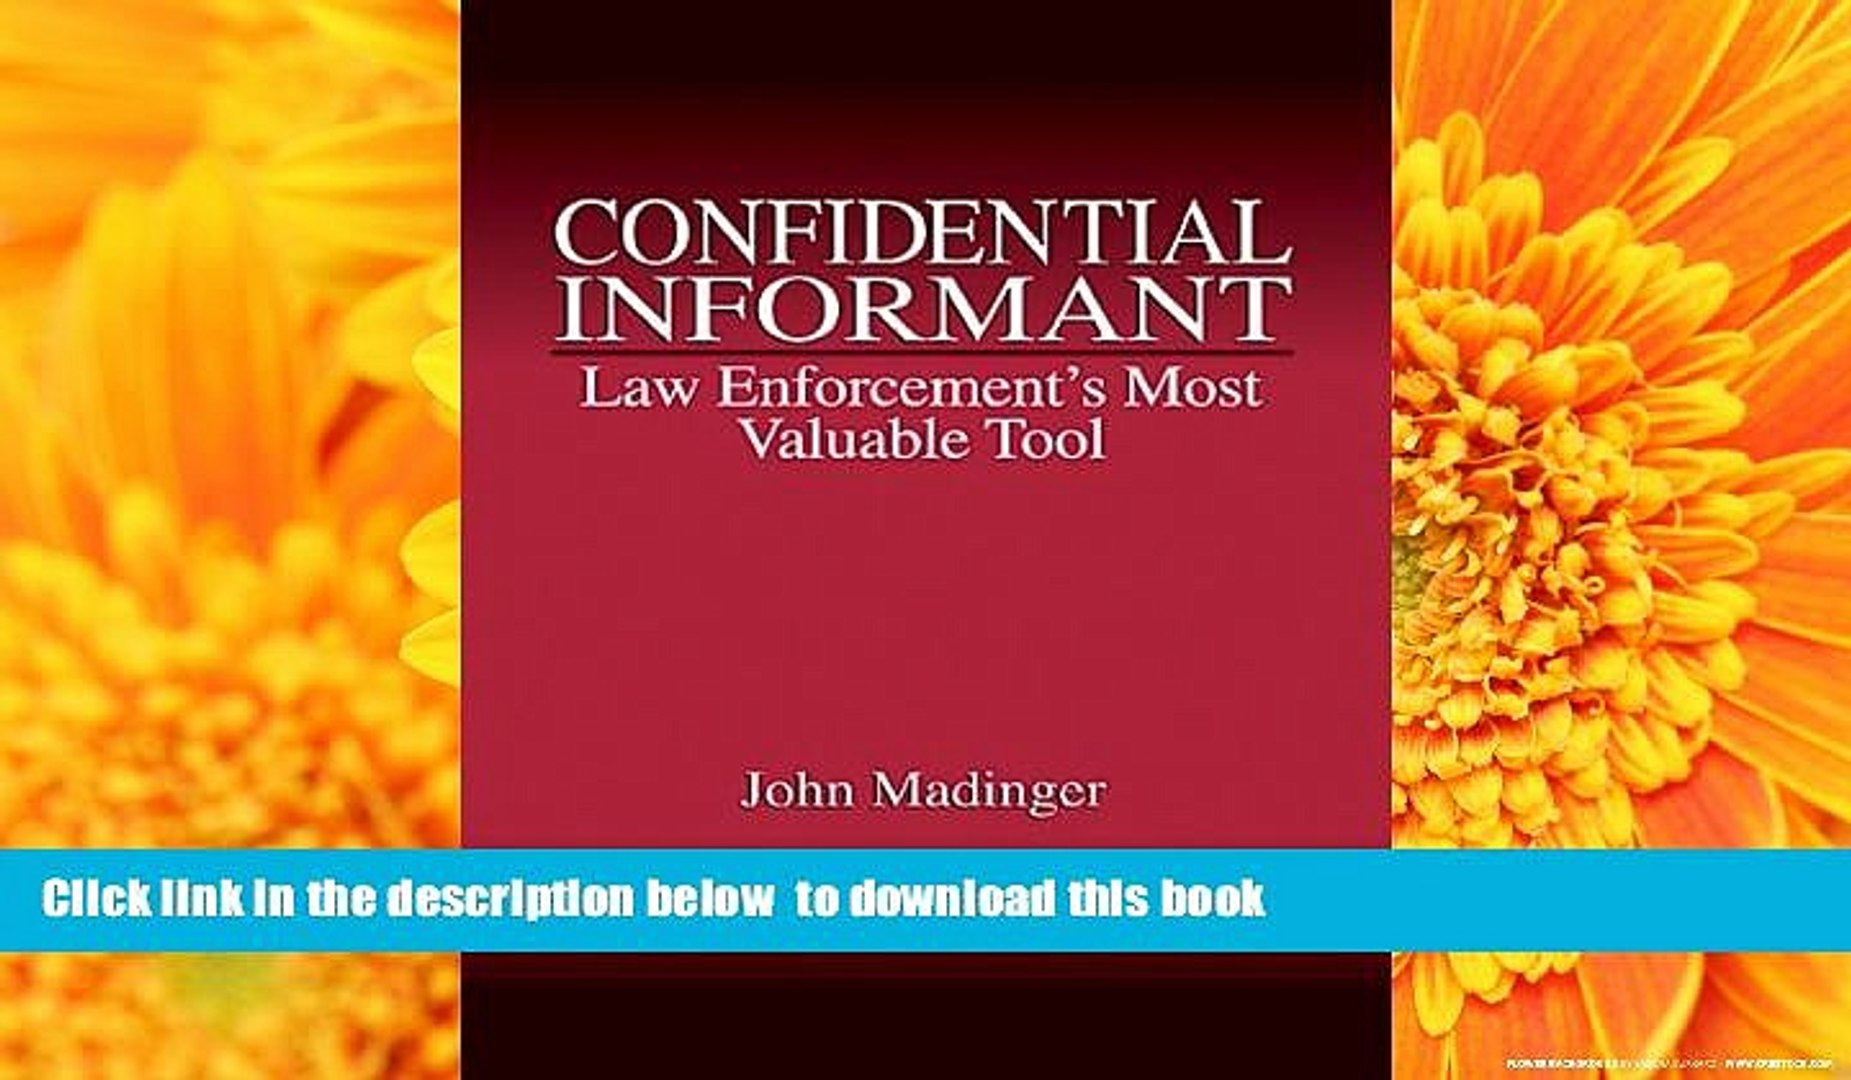 PDF [FREE] DOWNLOAD Confidential Informant: Law Enforcement s Most Valuable  Tool BOOK ONLINE